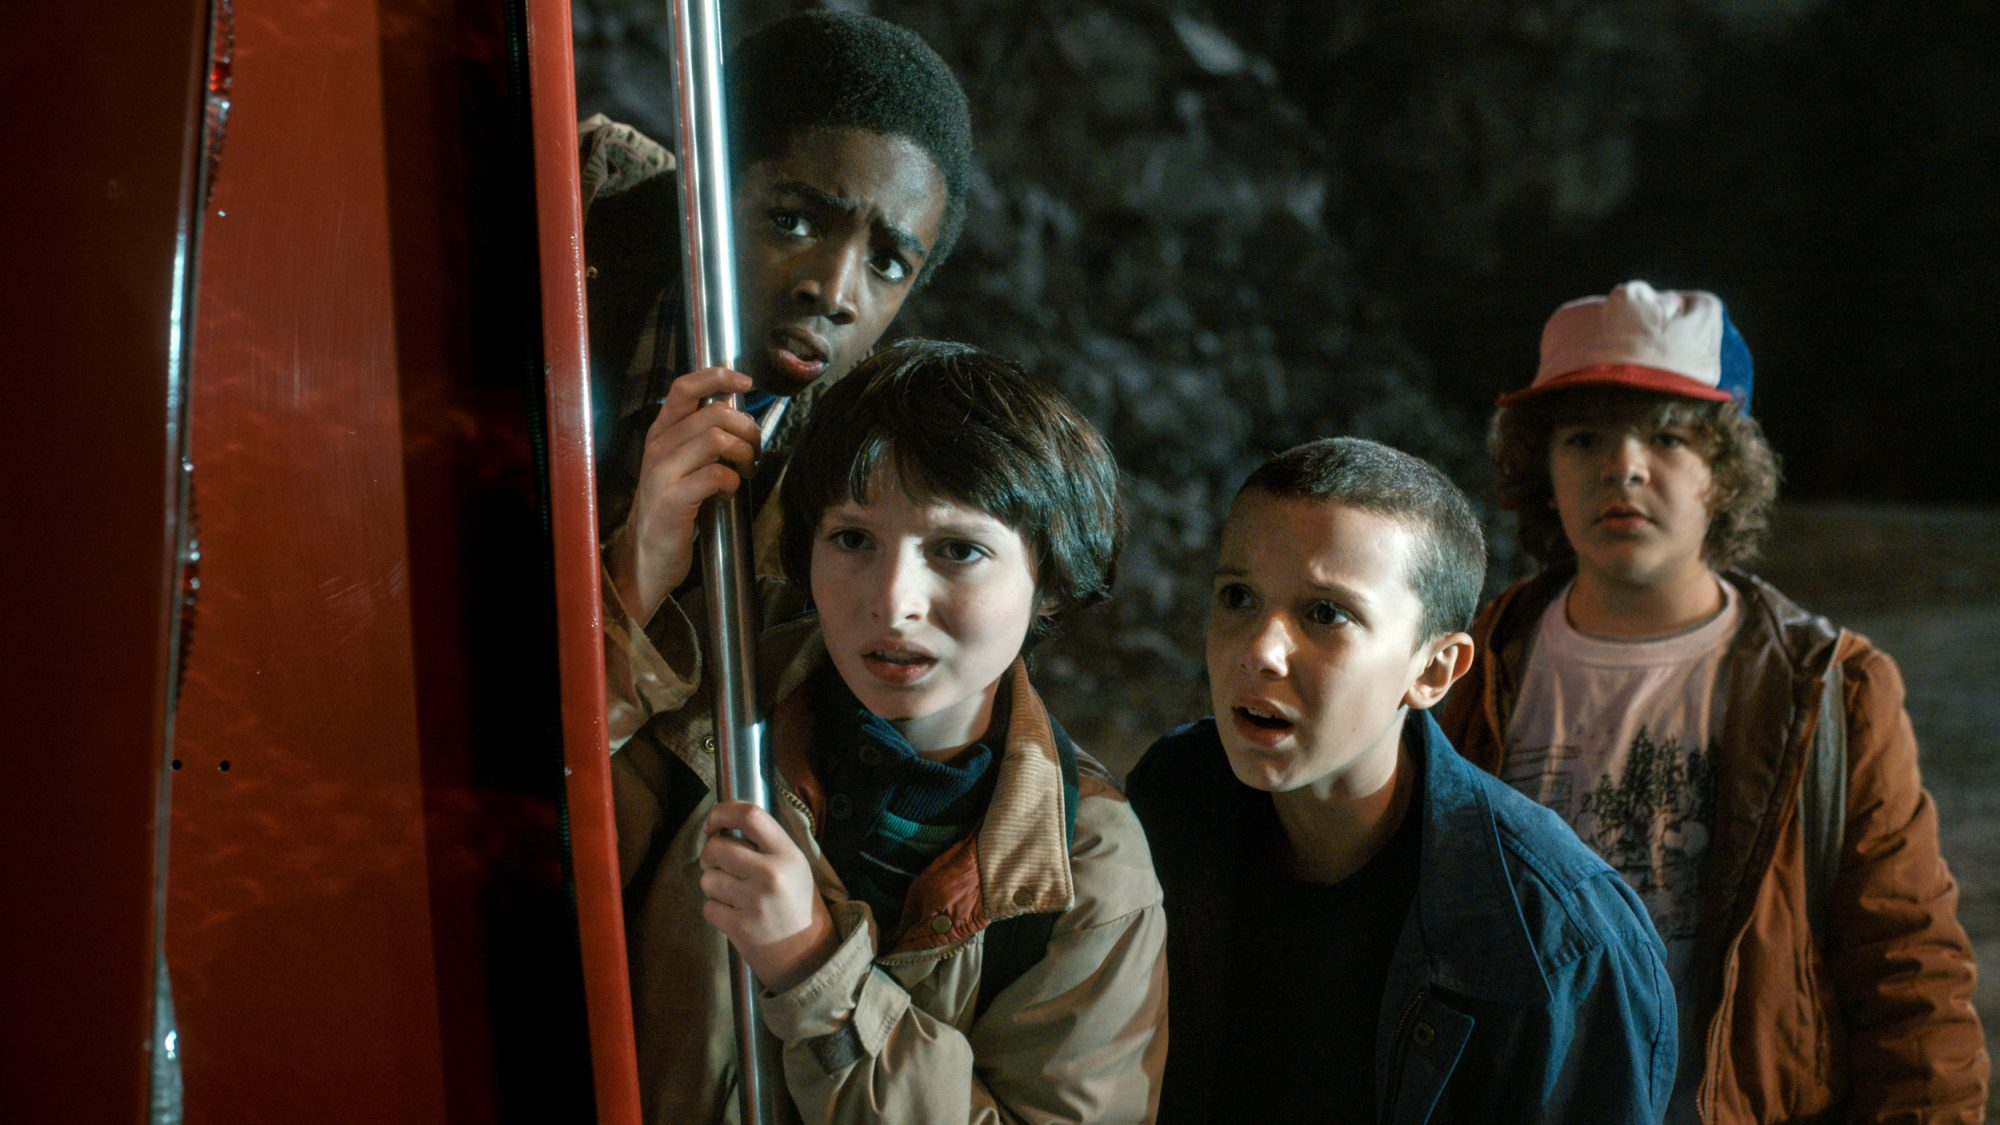 No Monsters in the 'Stranger Things' Season 3 Teaser, Just a Creepy Food Court